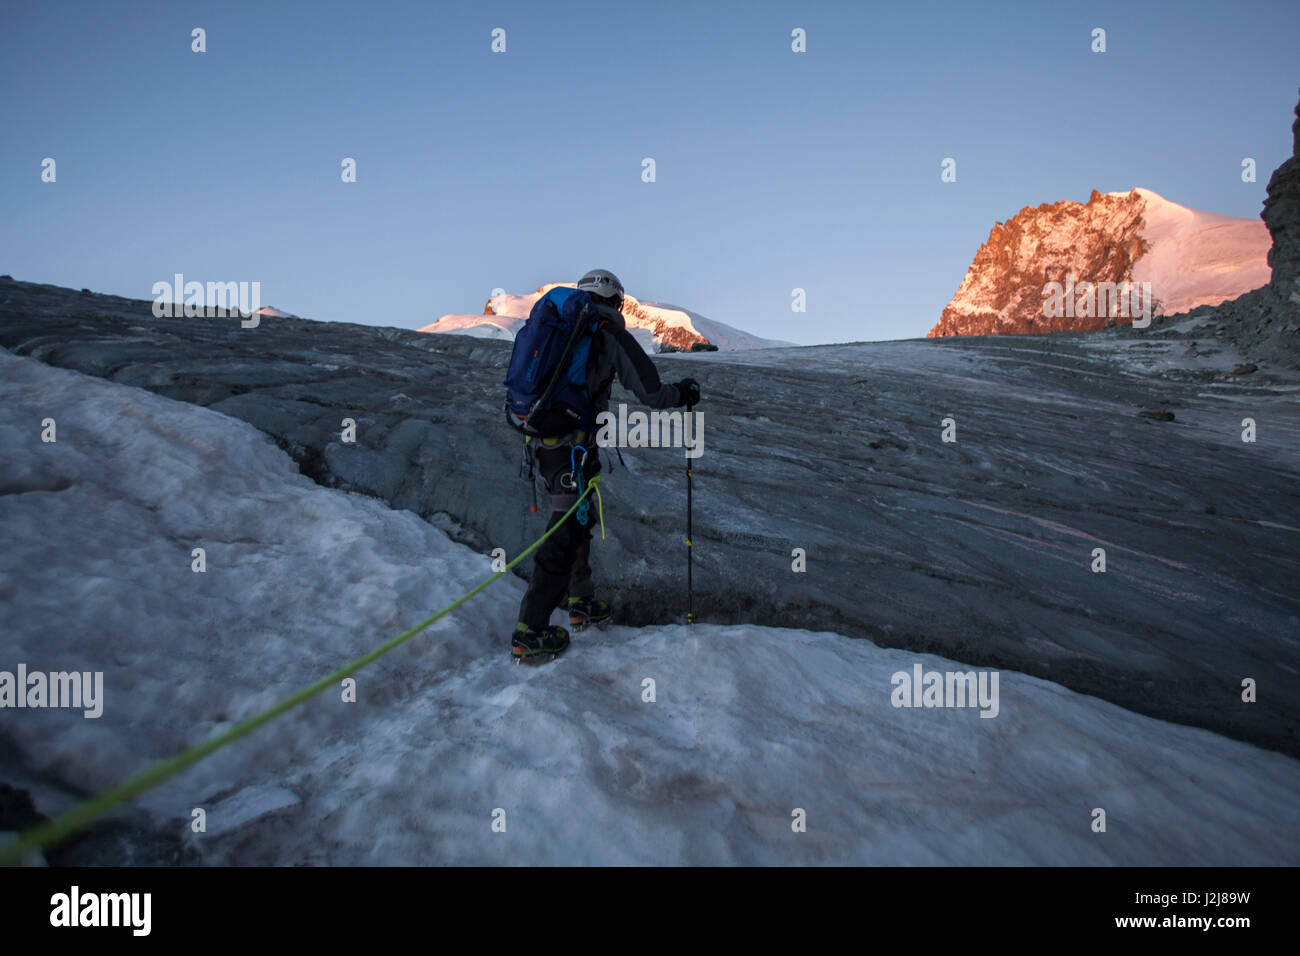 1 person, mountaineer in front of crevasse, climbing iron, ice, glacier, climb, approach, the sun, summit, loneliness, Stock Photo